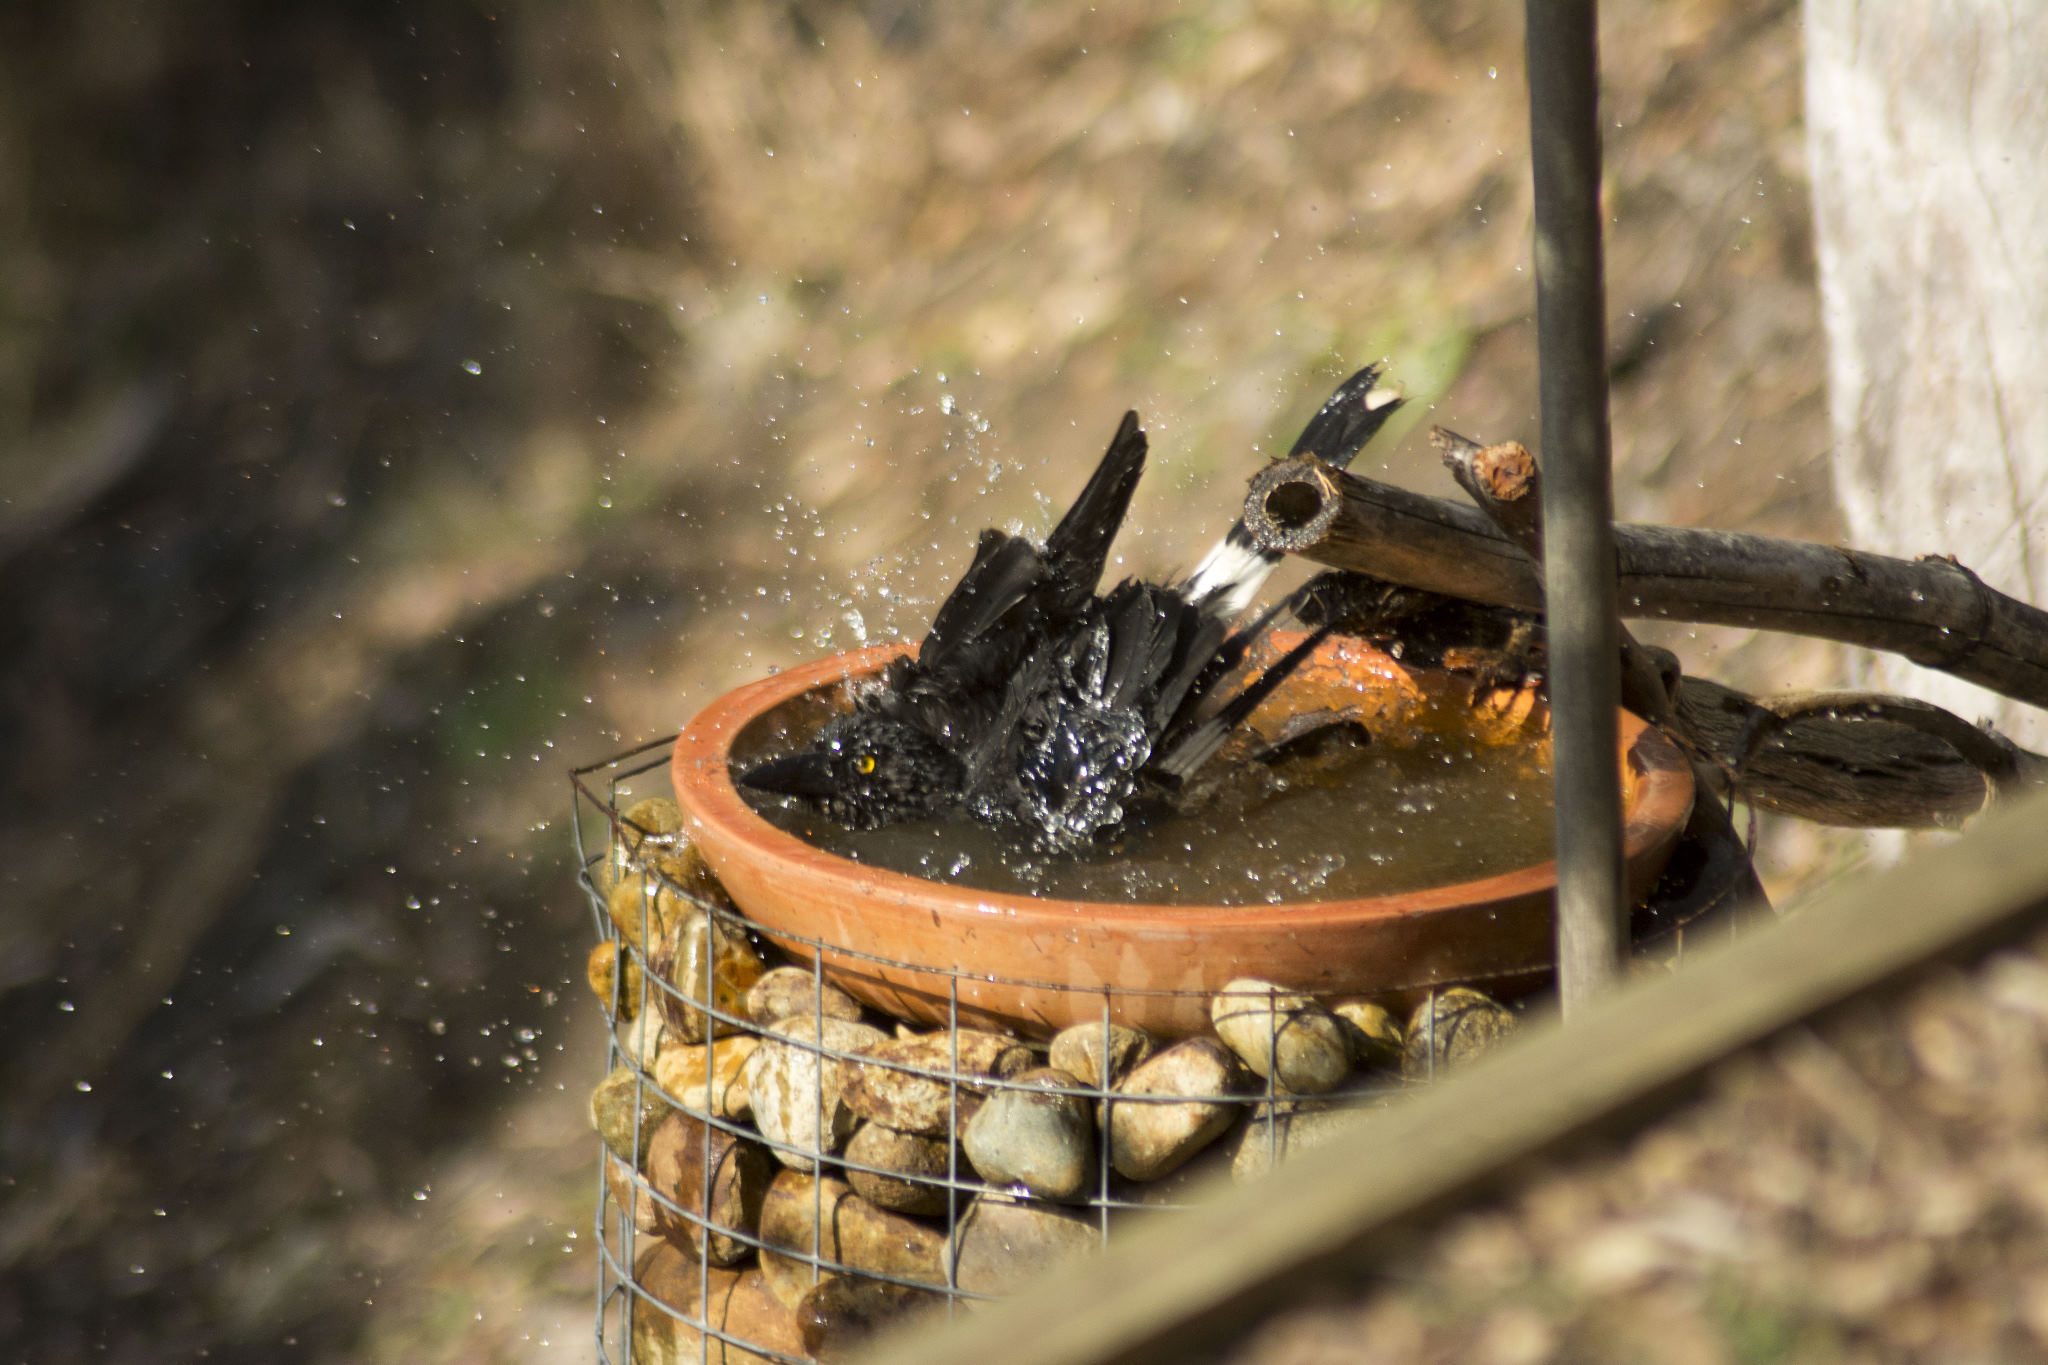 'Penny' the Currawong taking a bath